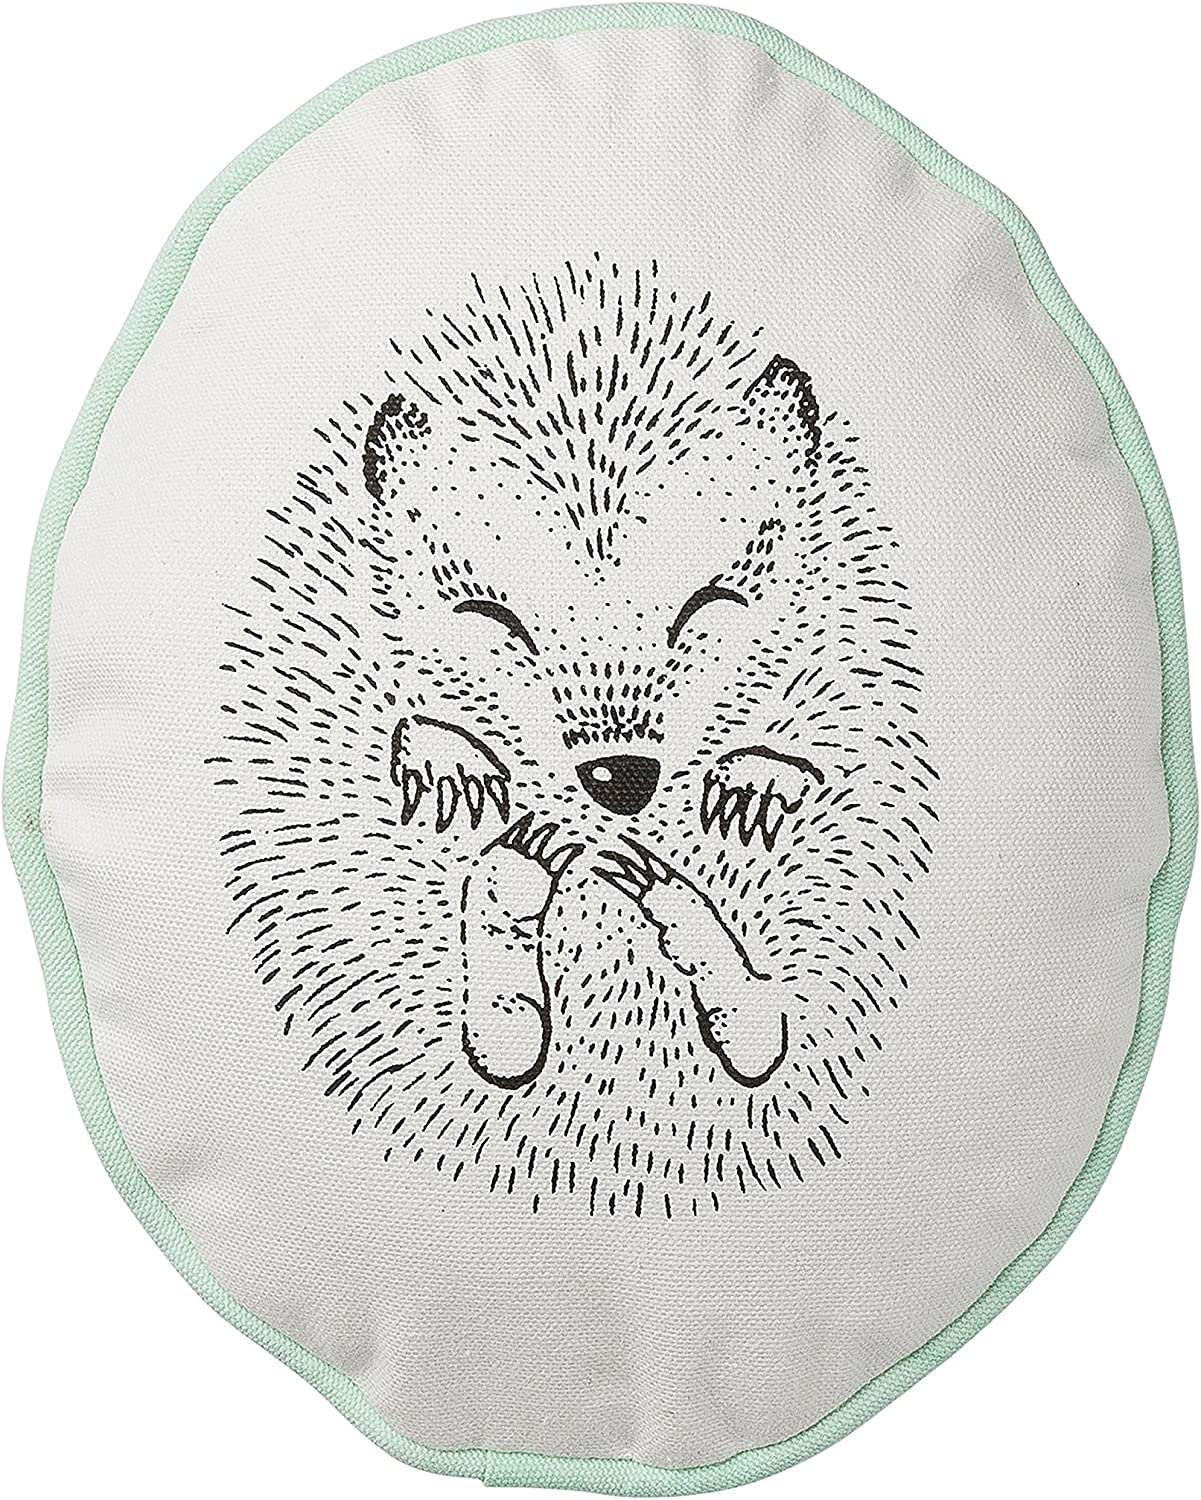 Cotton Pillow with Sleeping Hedgehog with Winter Mint Trim